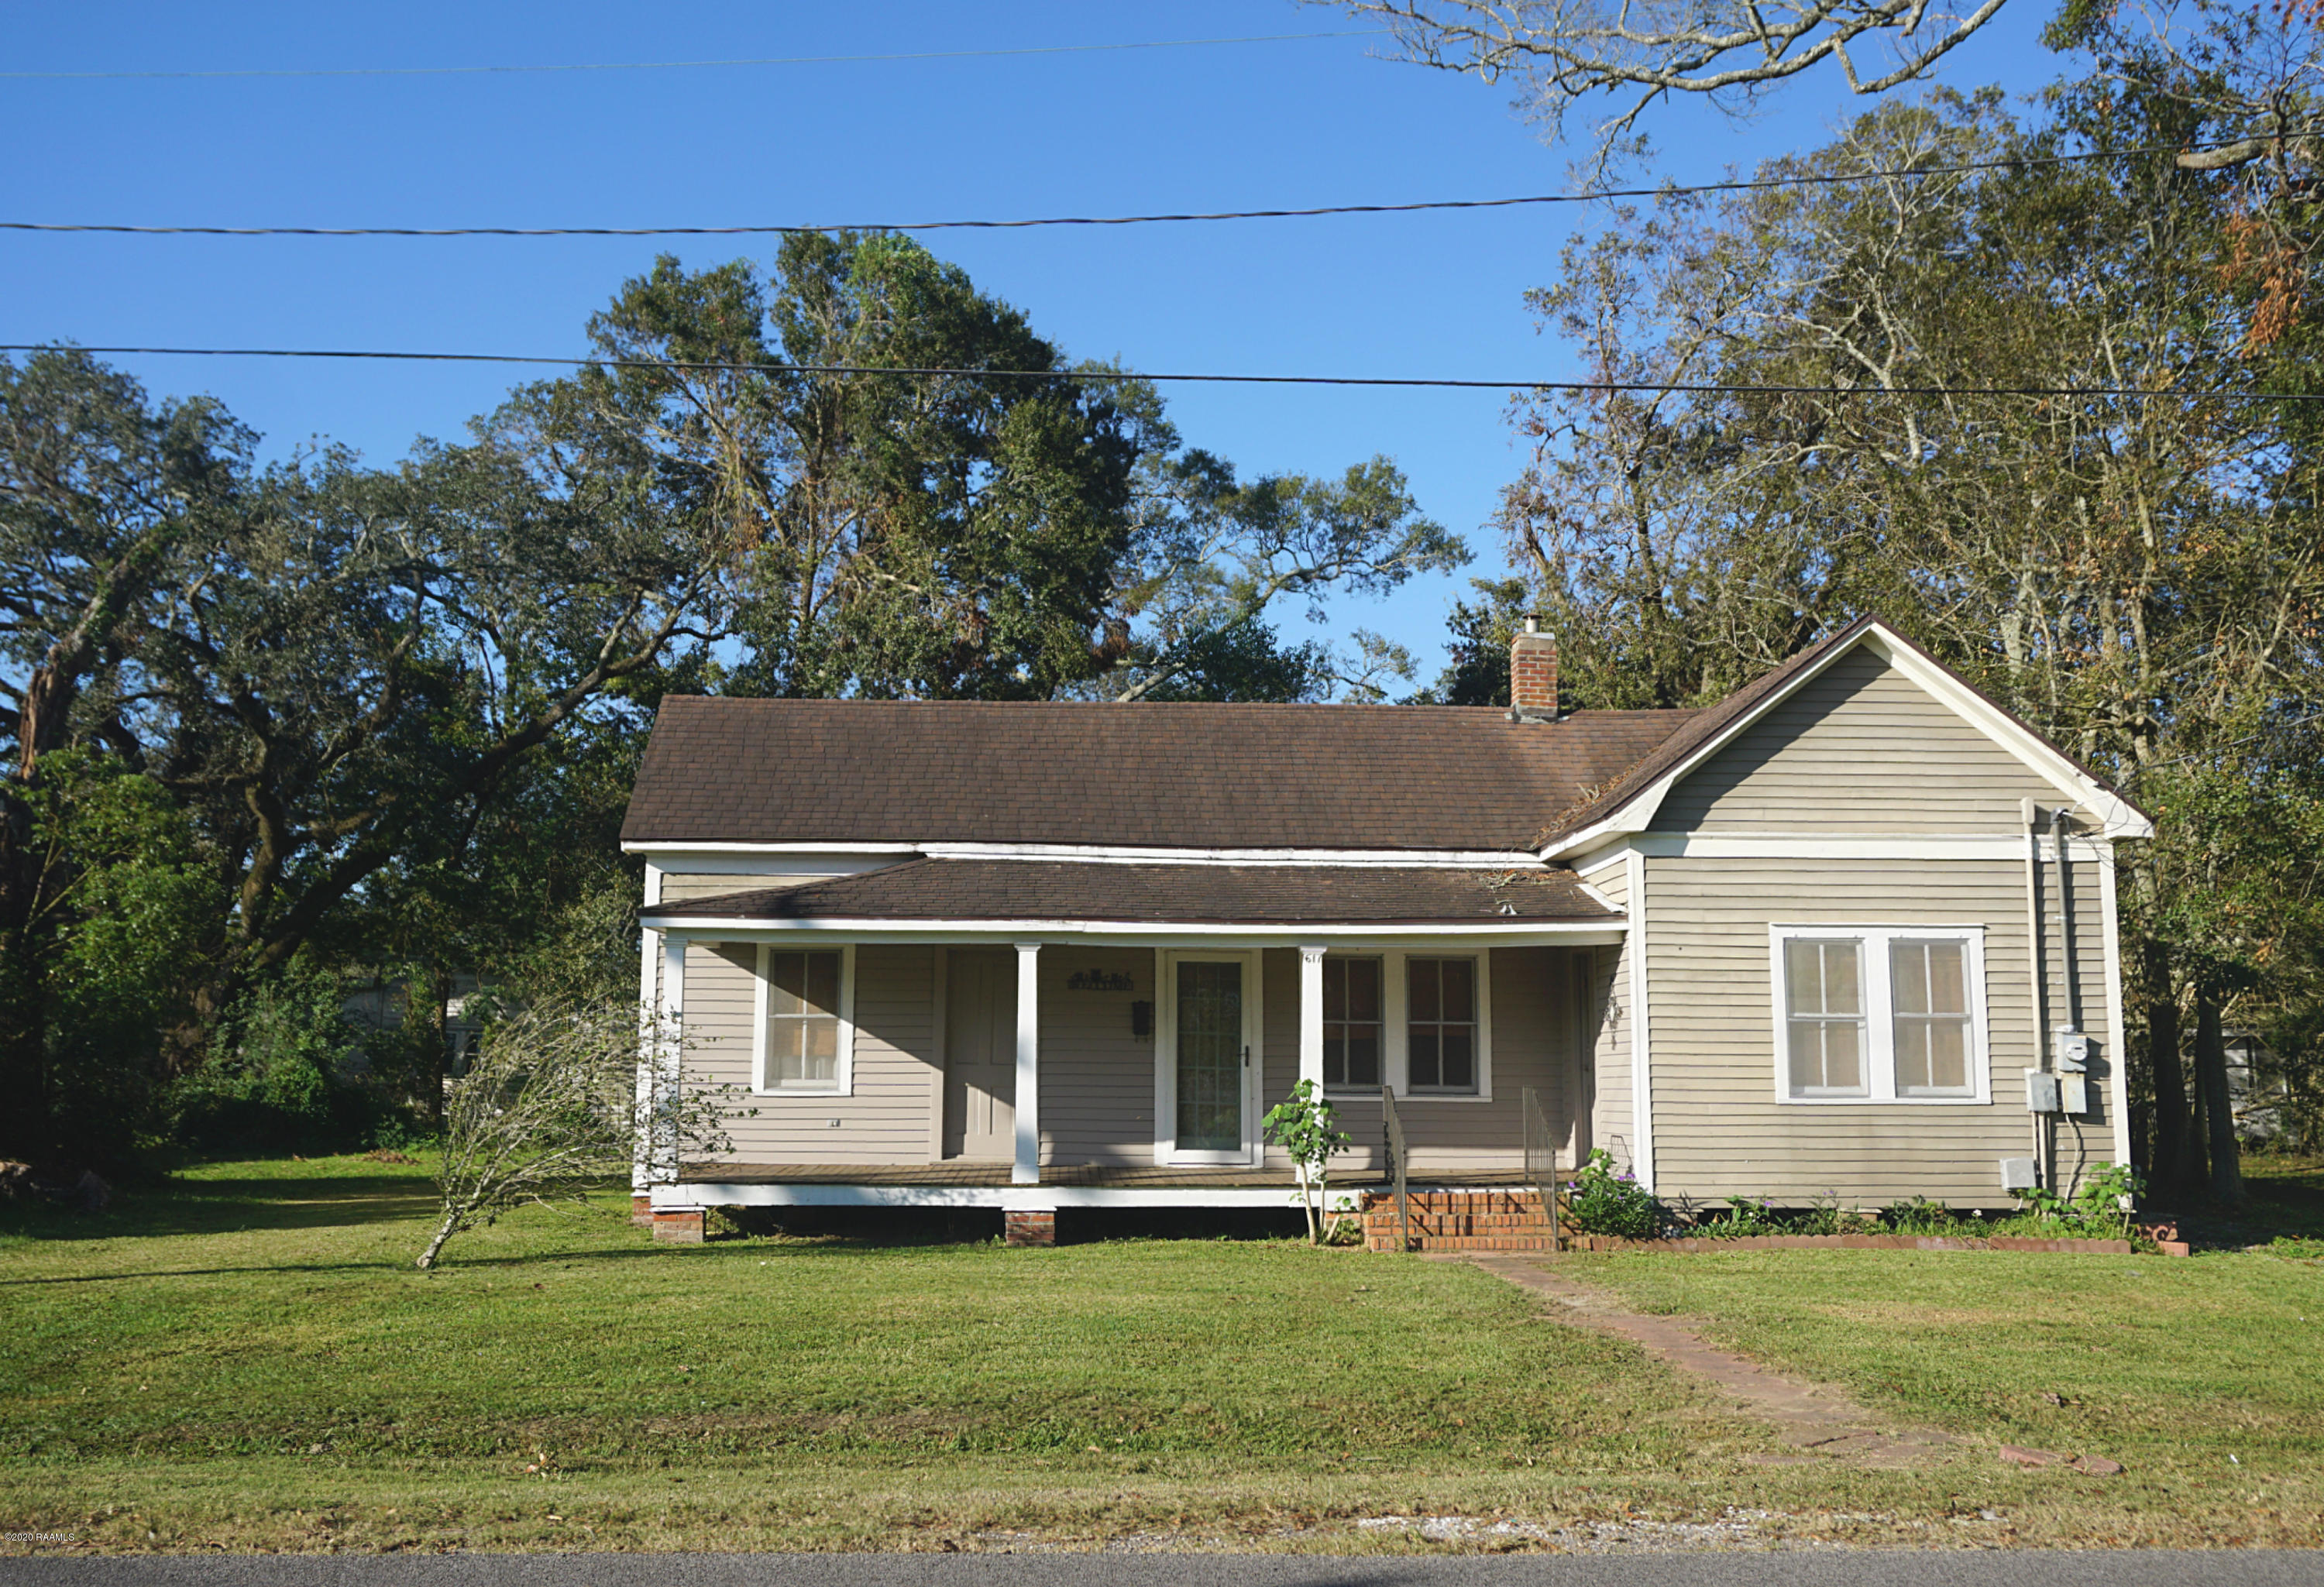 617 Avenue F N, Crowley, LA 70526 Photo #1